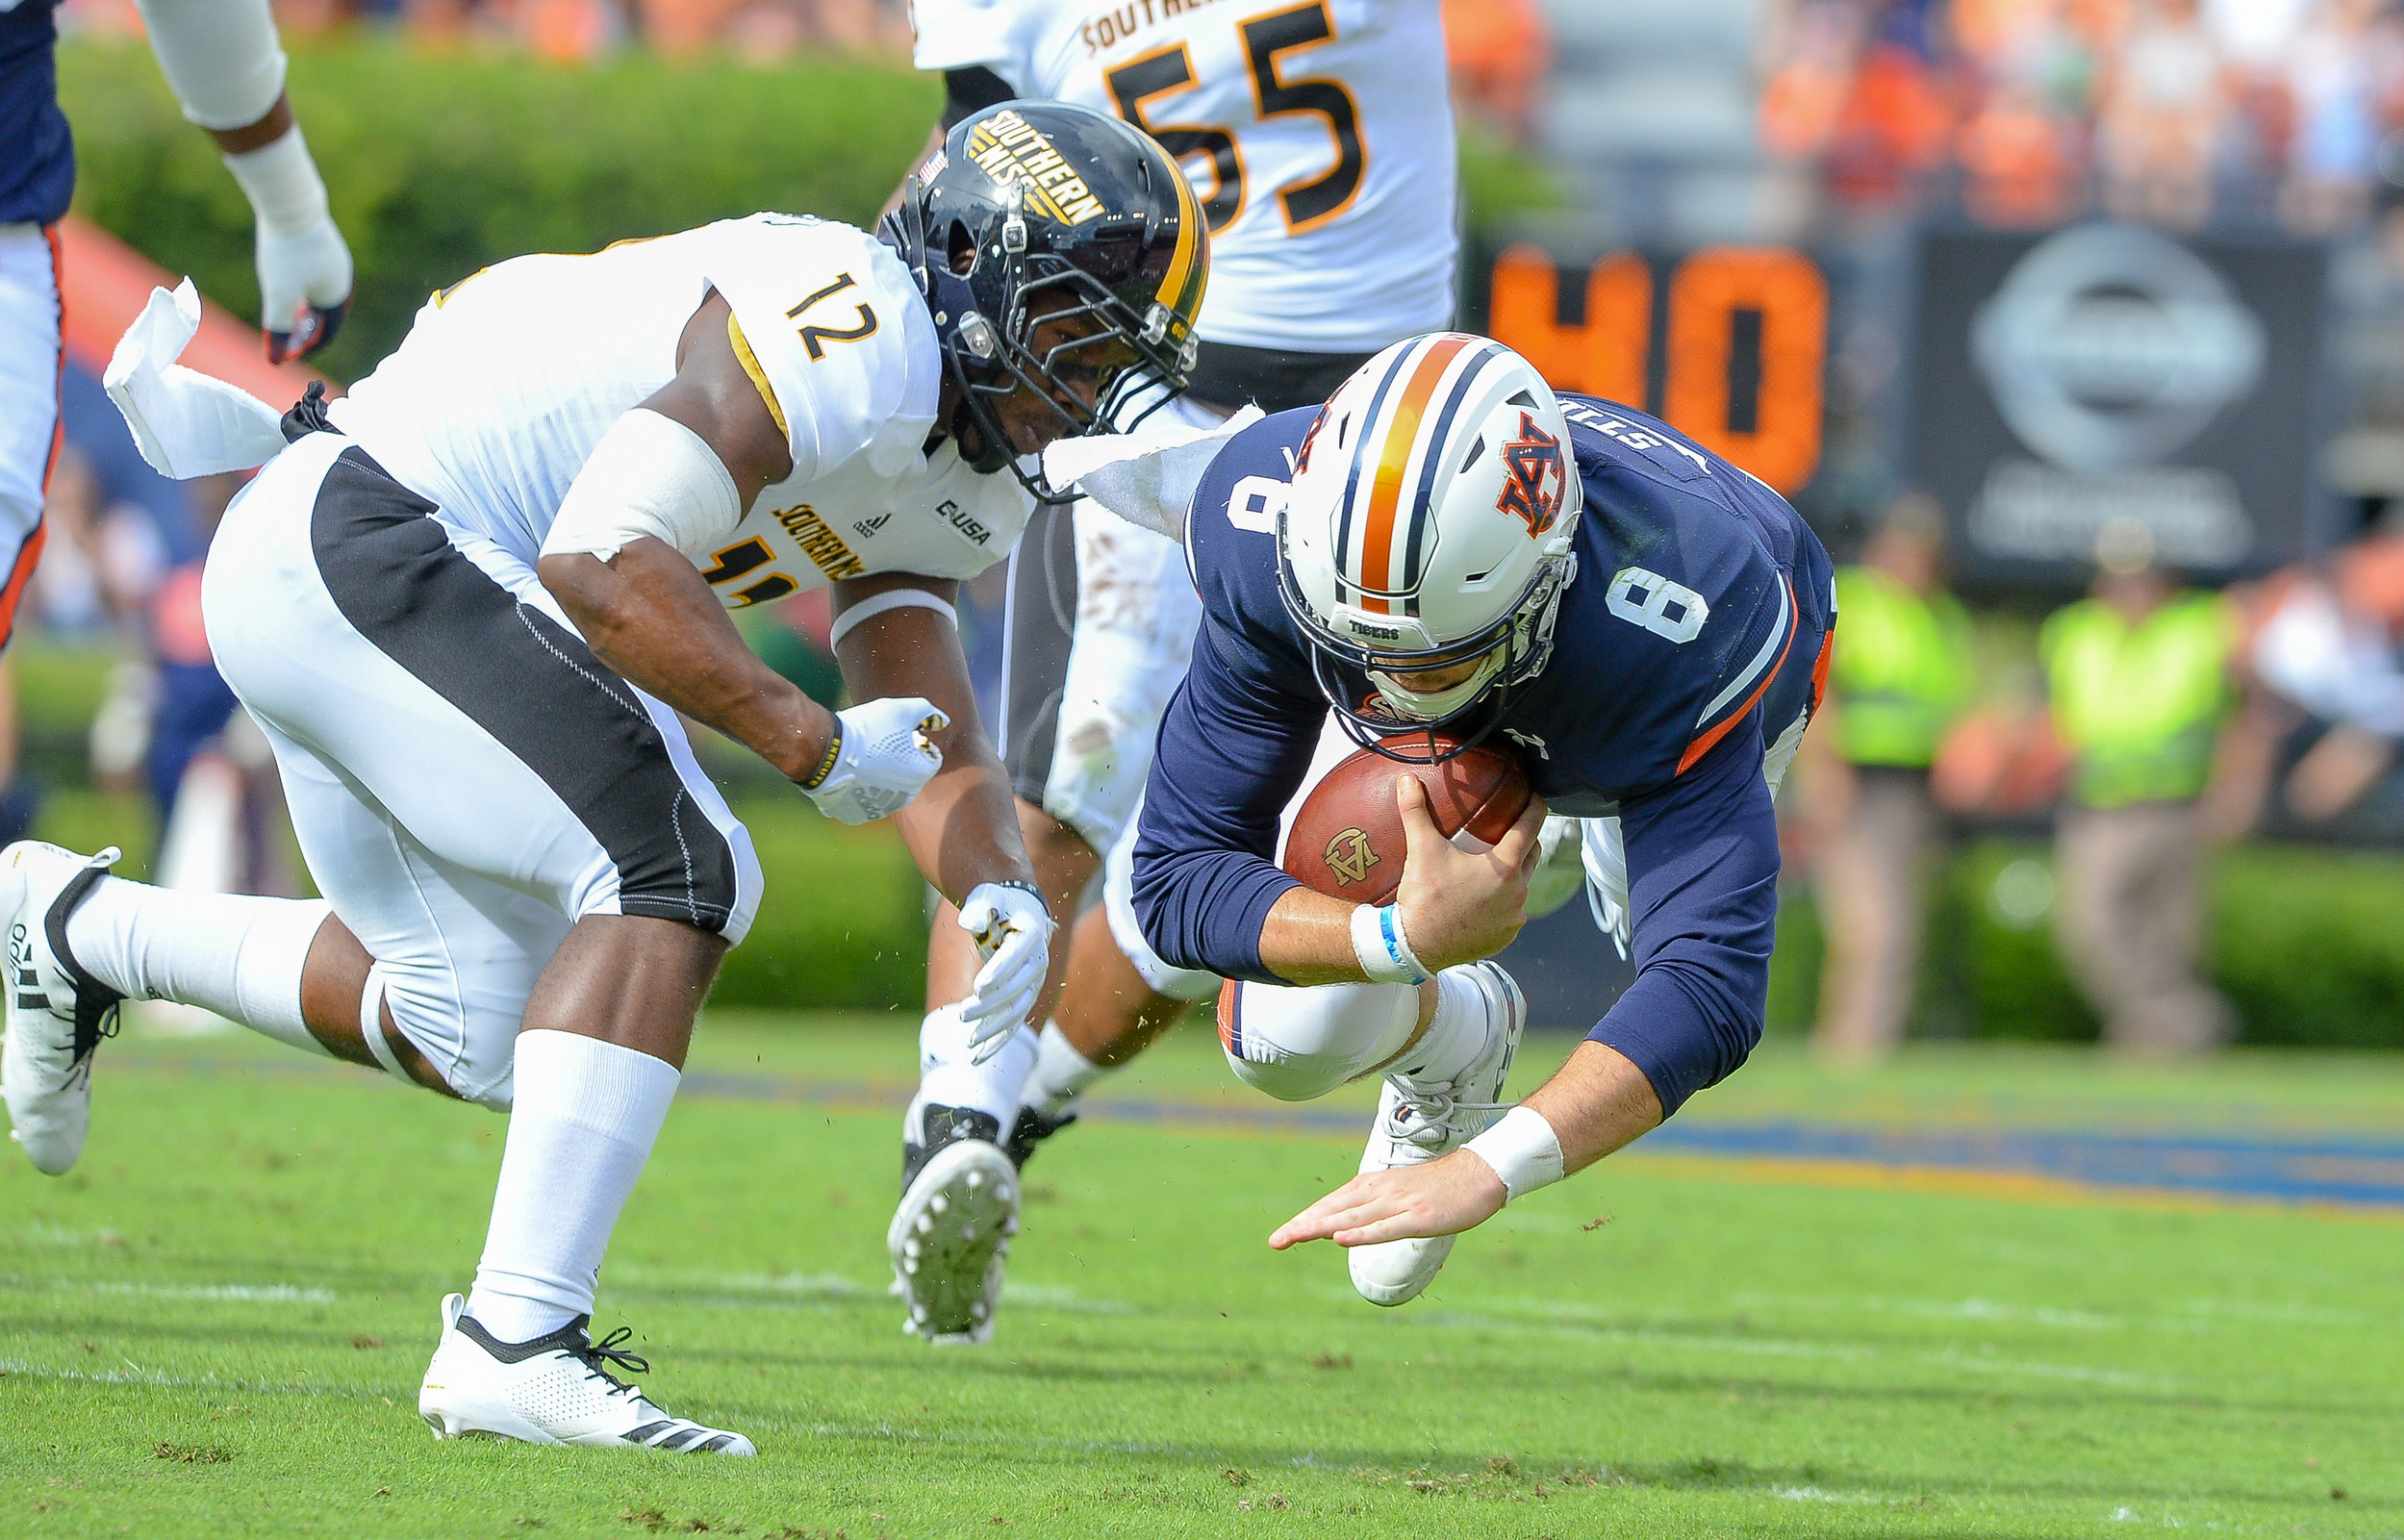 Auburn Tigers quarterback Jarrett Stidham (8) is brought down by Southern Miss Golden Eagles defensive back D.Q. Thomas (12) during the first half of Saturday's game, at Jordan Hare Stadium in Auburn AL. Daily Mountain Eagle -  Jeff Johnsey